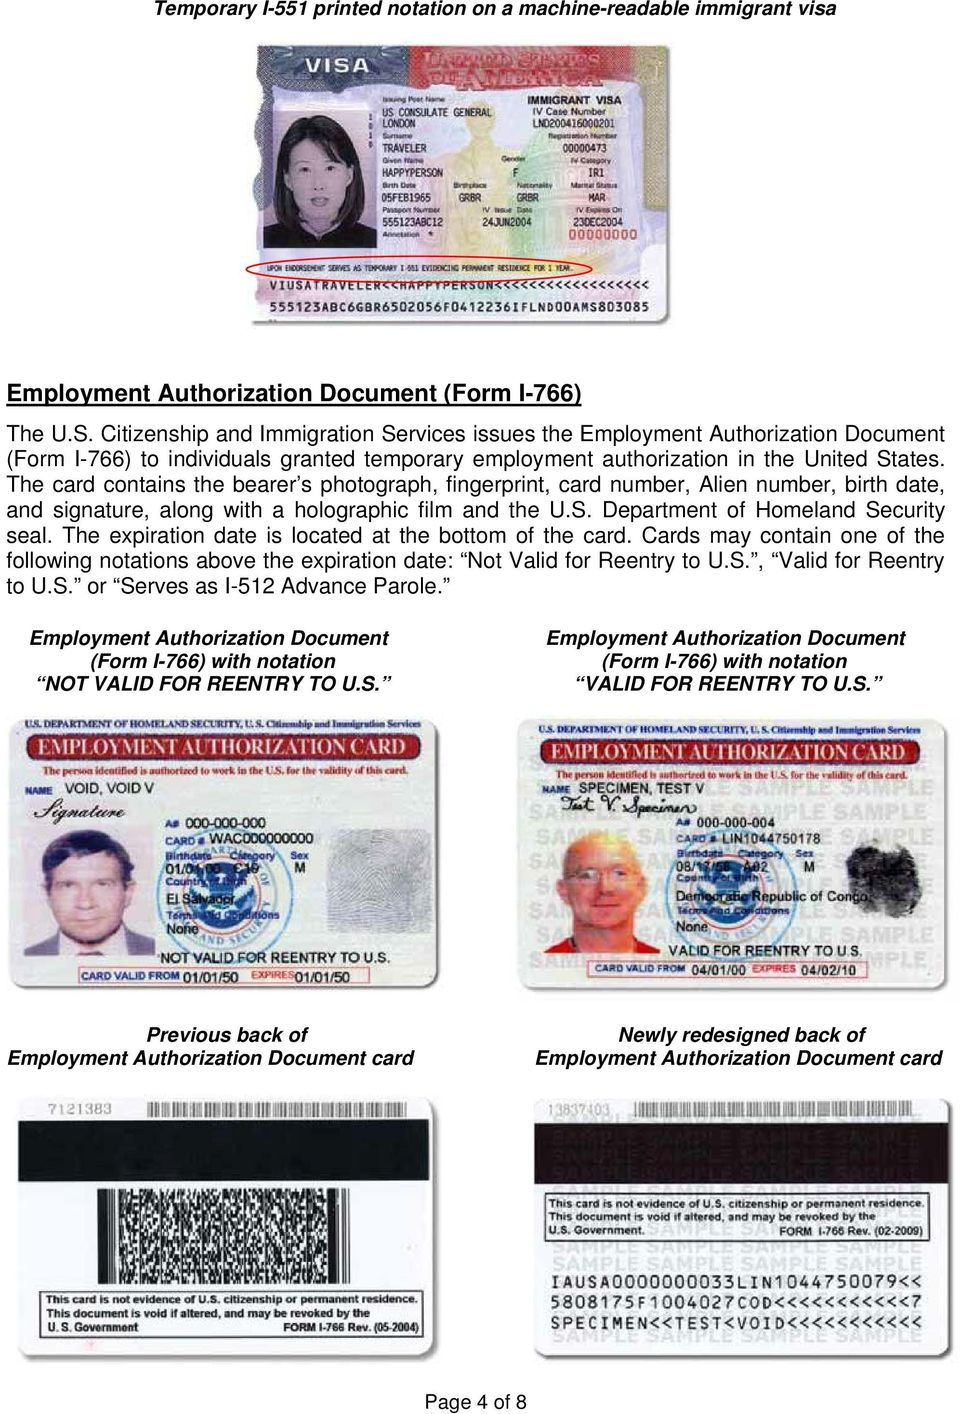 The card contains the bearer s photograph, fingerprint, card number, Alien number, birth date, and signature, along with a holographic film and the U.S. Department of Homeland Security seal.